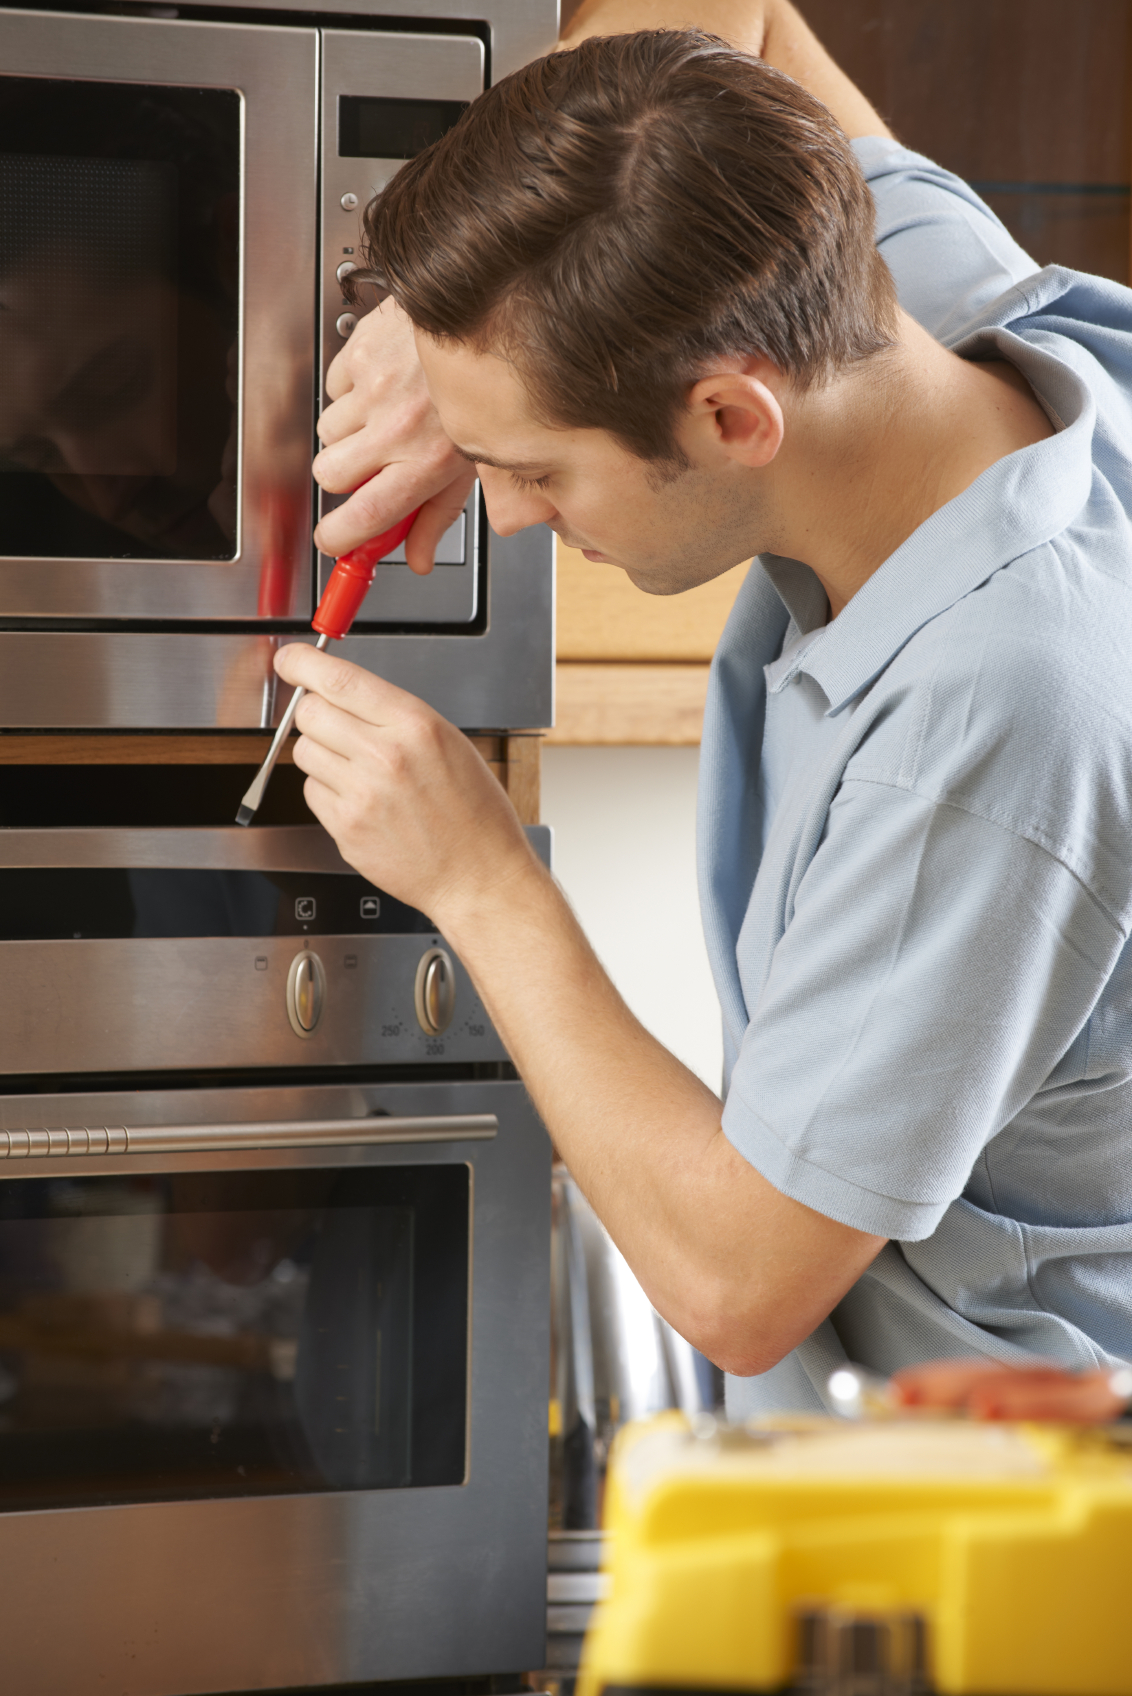 Home Repair Companies 5 Factors To Consider When Choosing An Appliance Repair Company